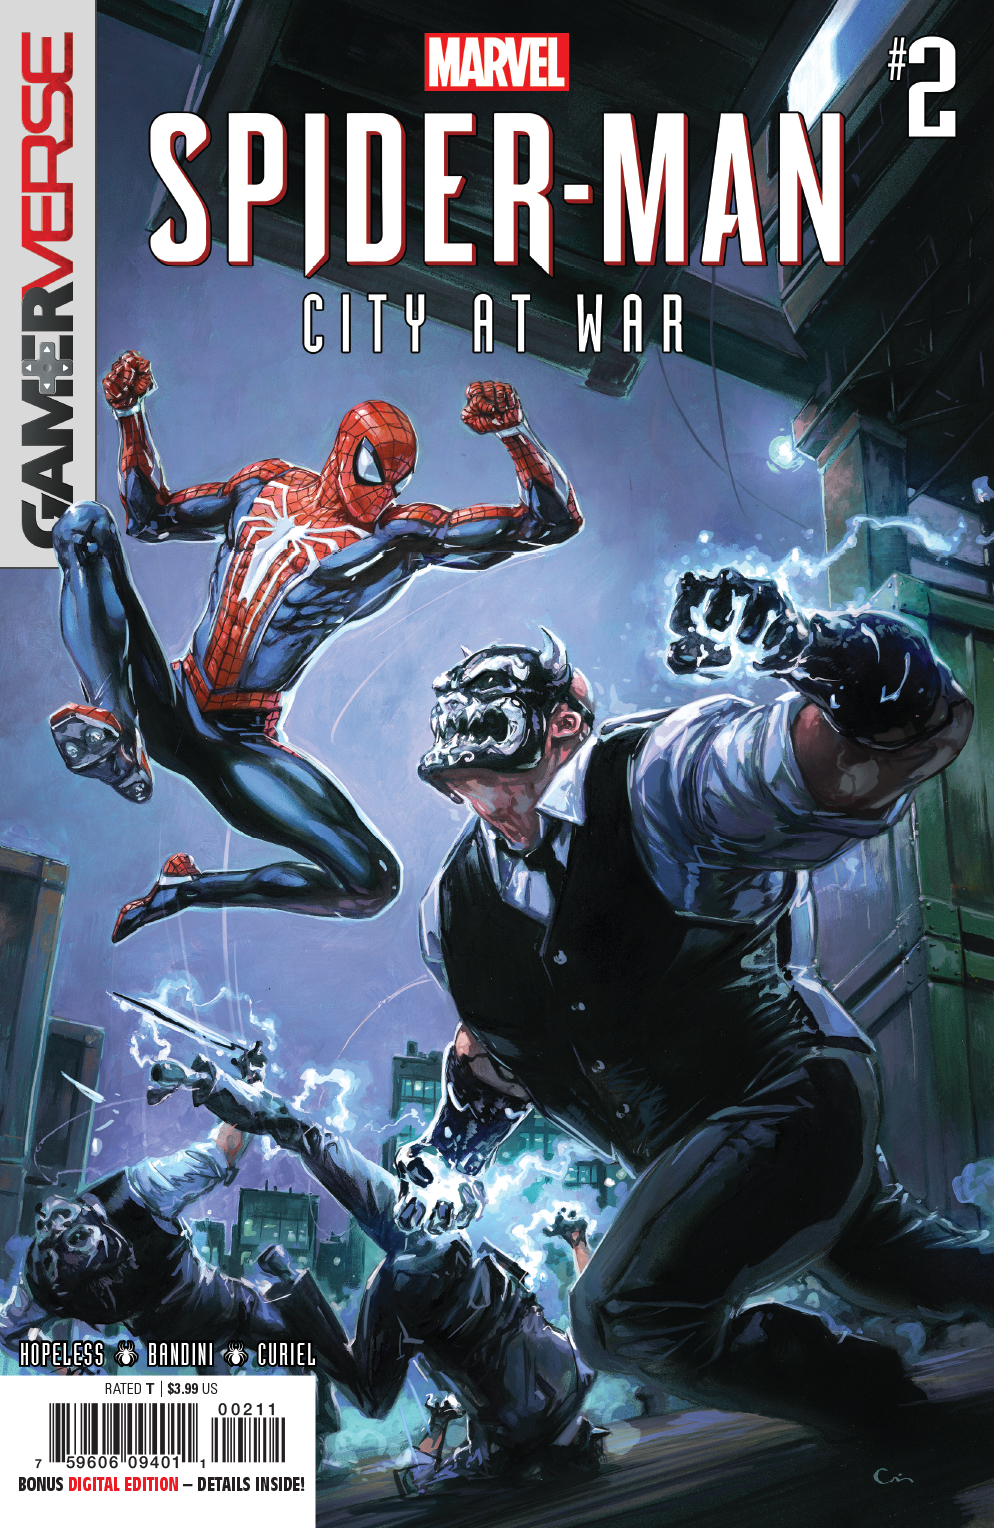 Top 500 Most-Ordered Comics and Graphic Novels for April 2019